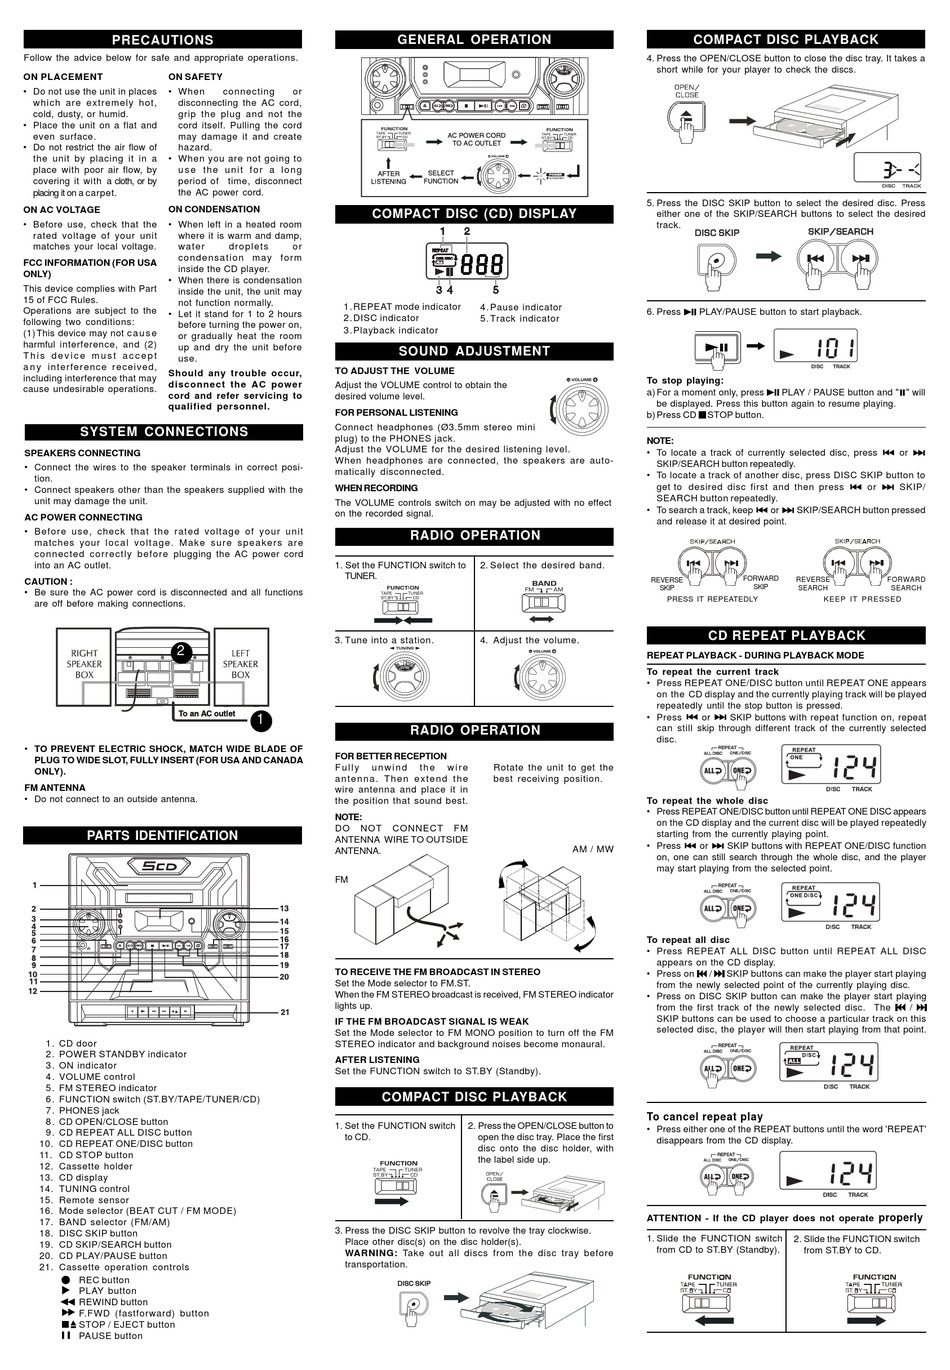 AUDIOVOX CE445C OPERATING INSTRUCTIONS Pdf Download